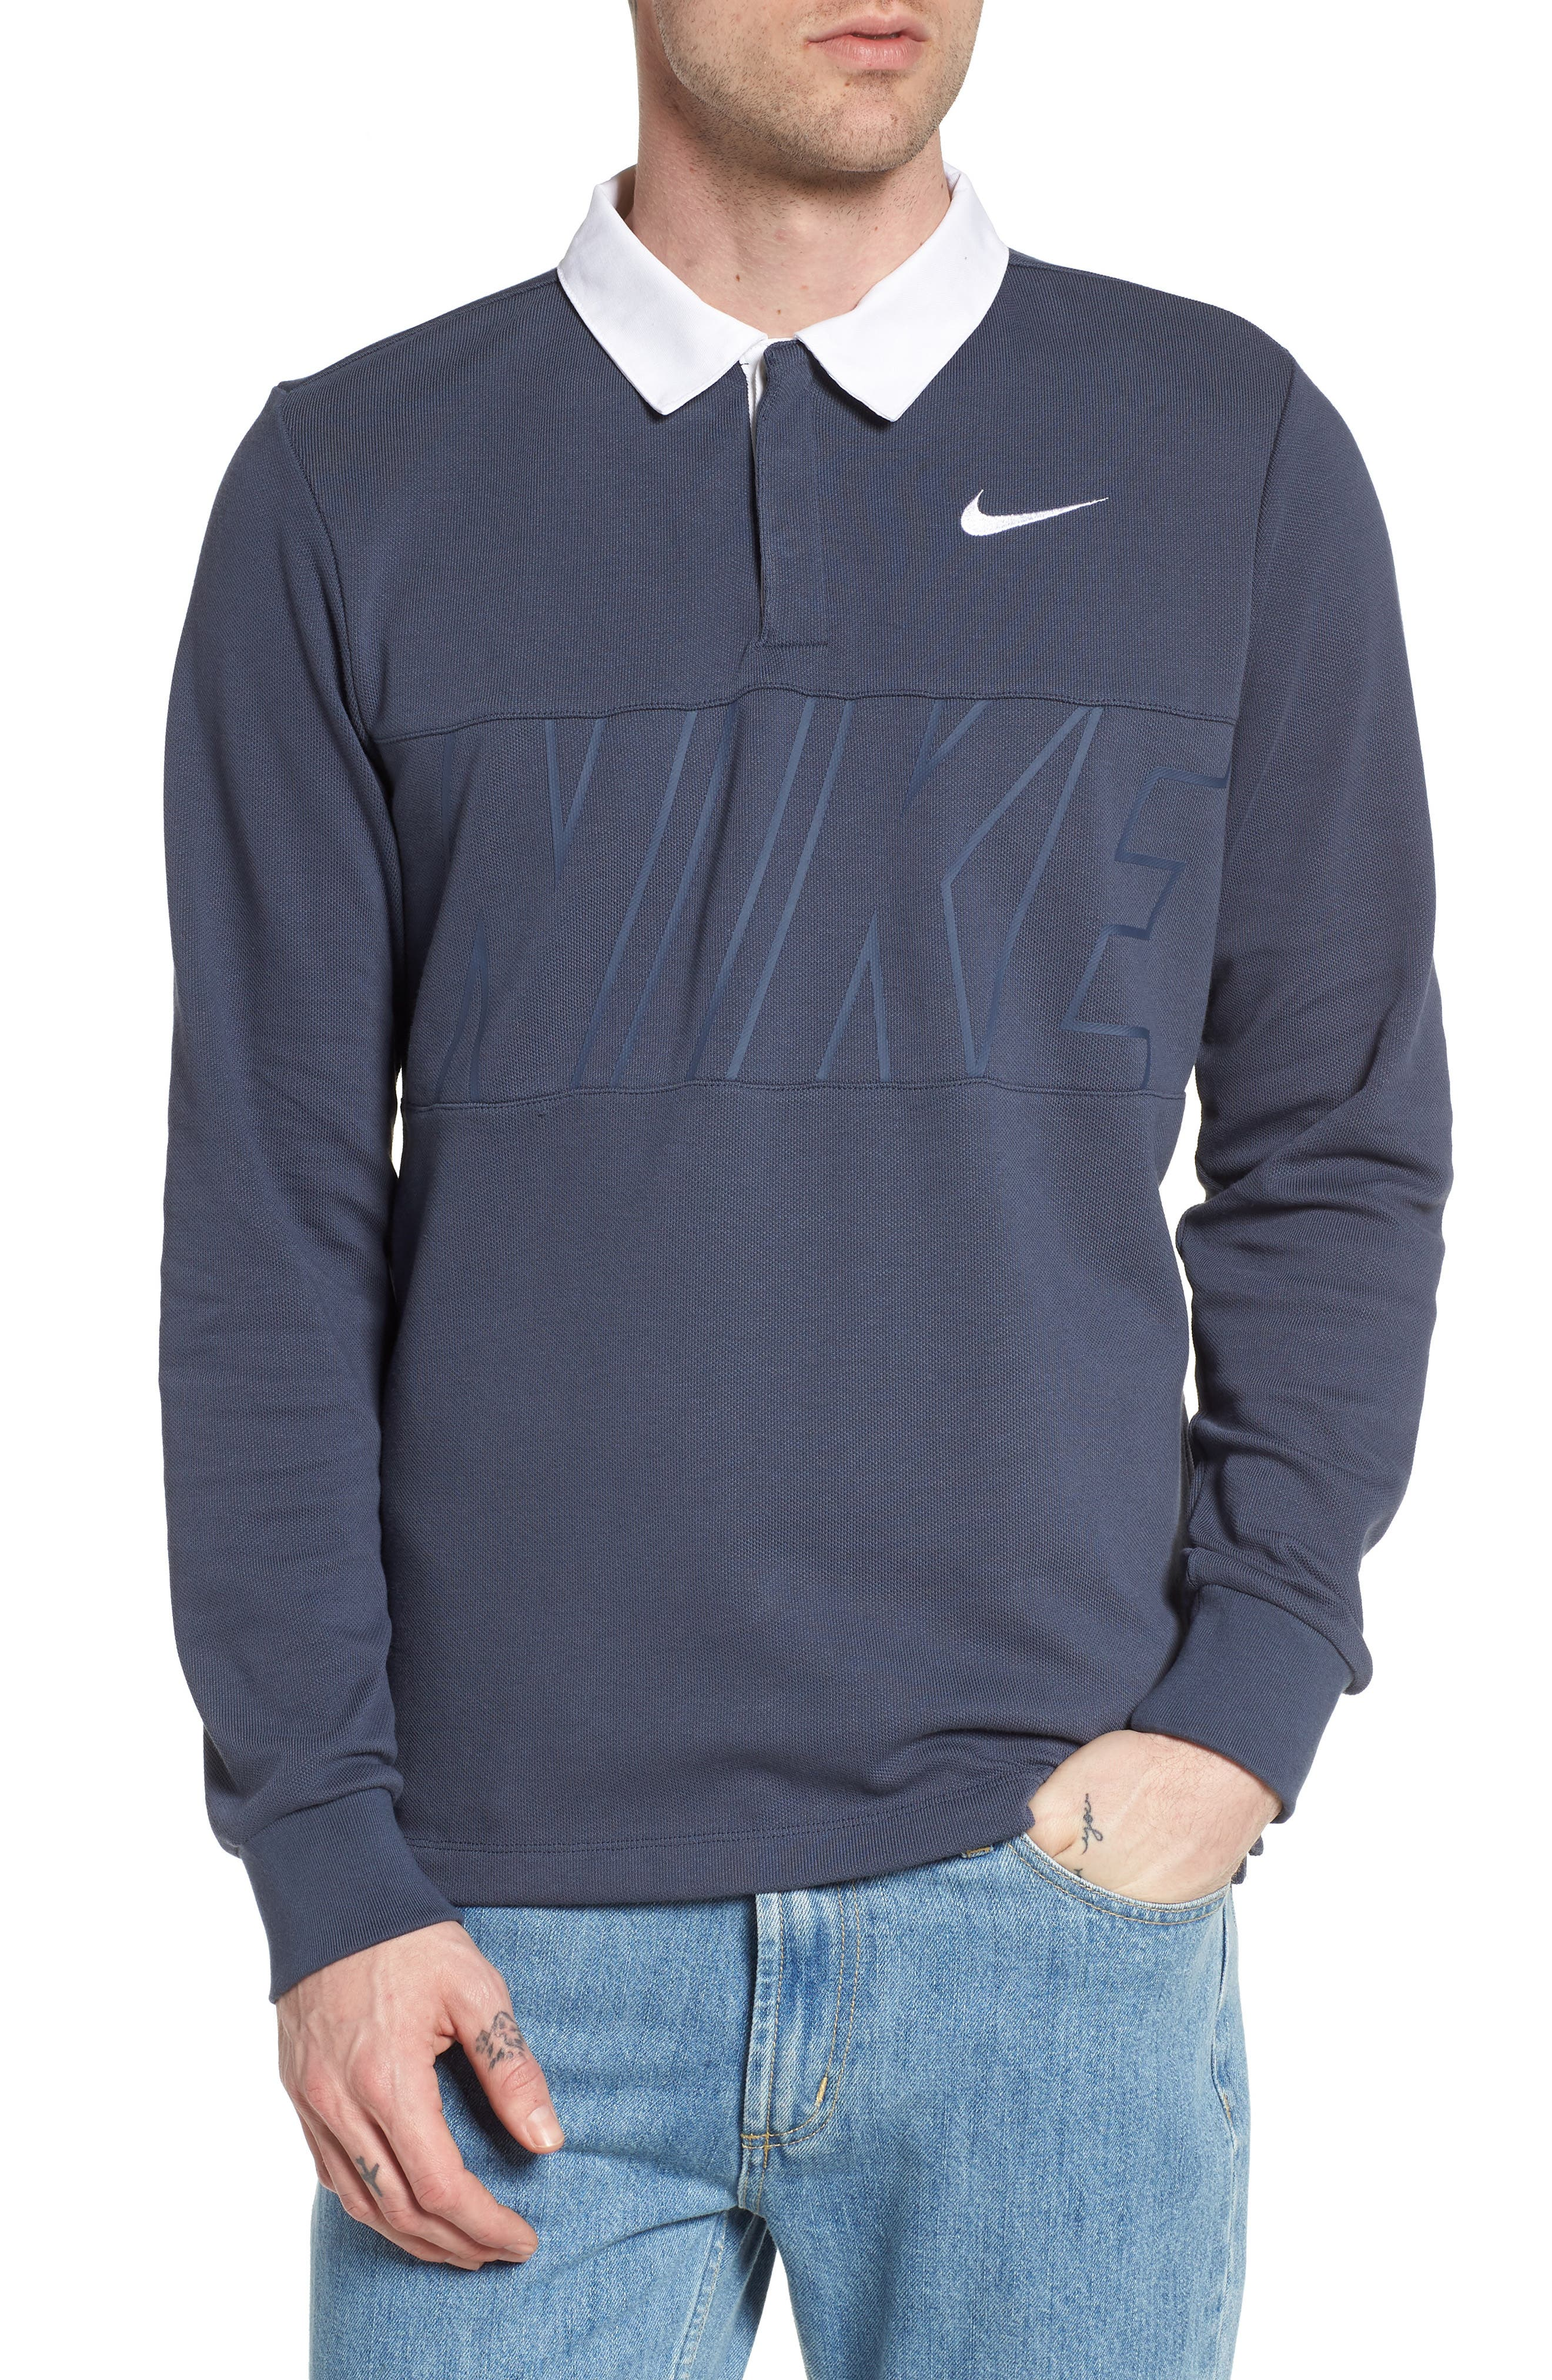 Nike Dry SB Rugby Polo,                             Main thumbnail 1, color,                             Thunder Blue/ White